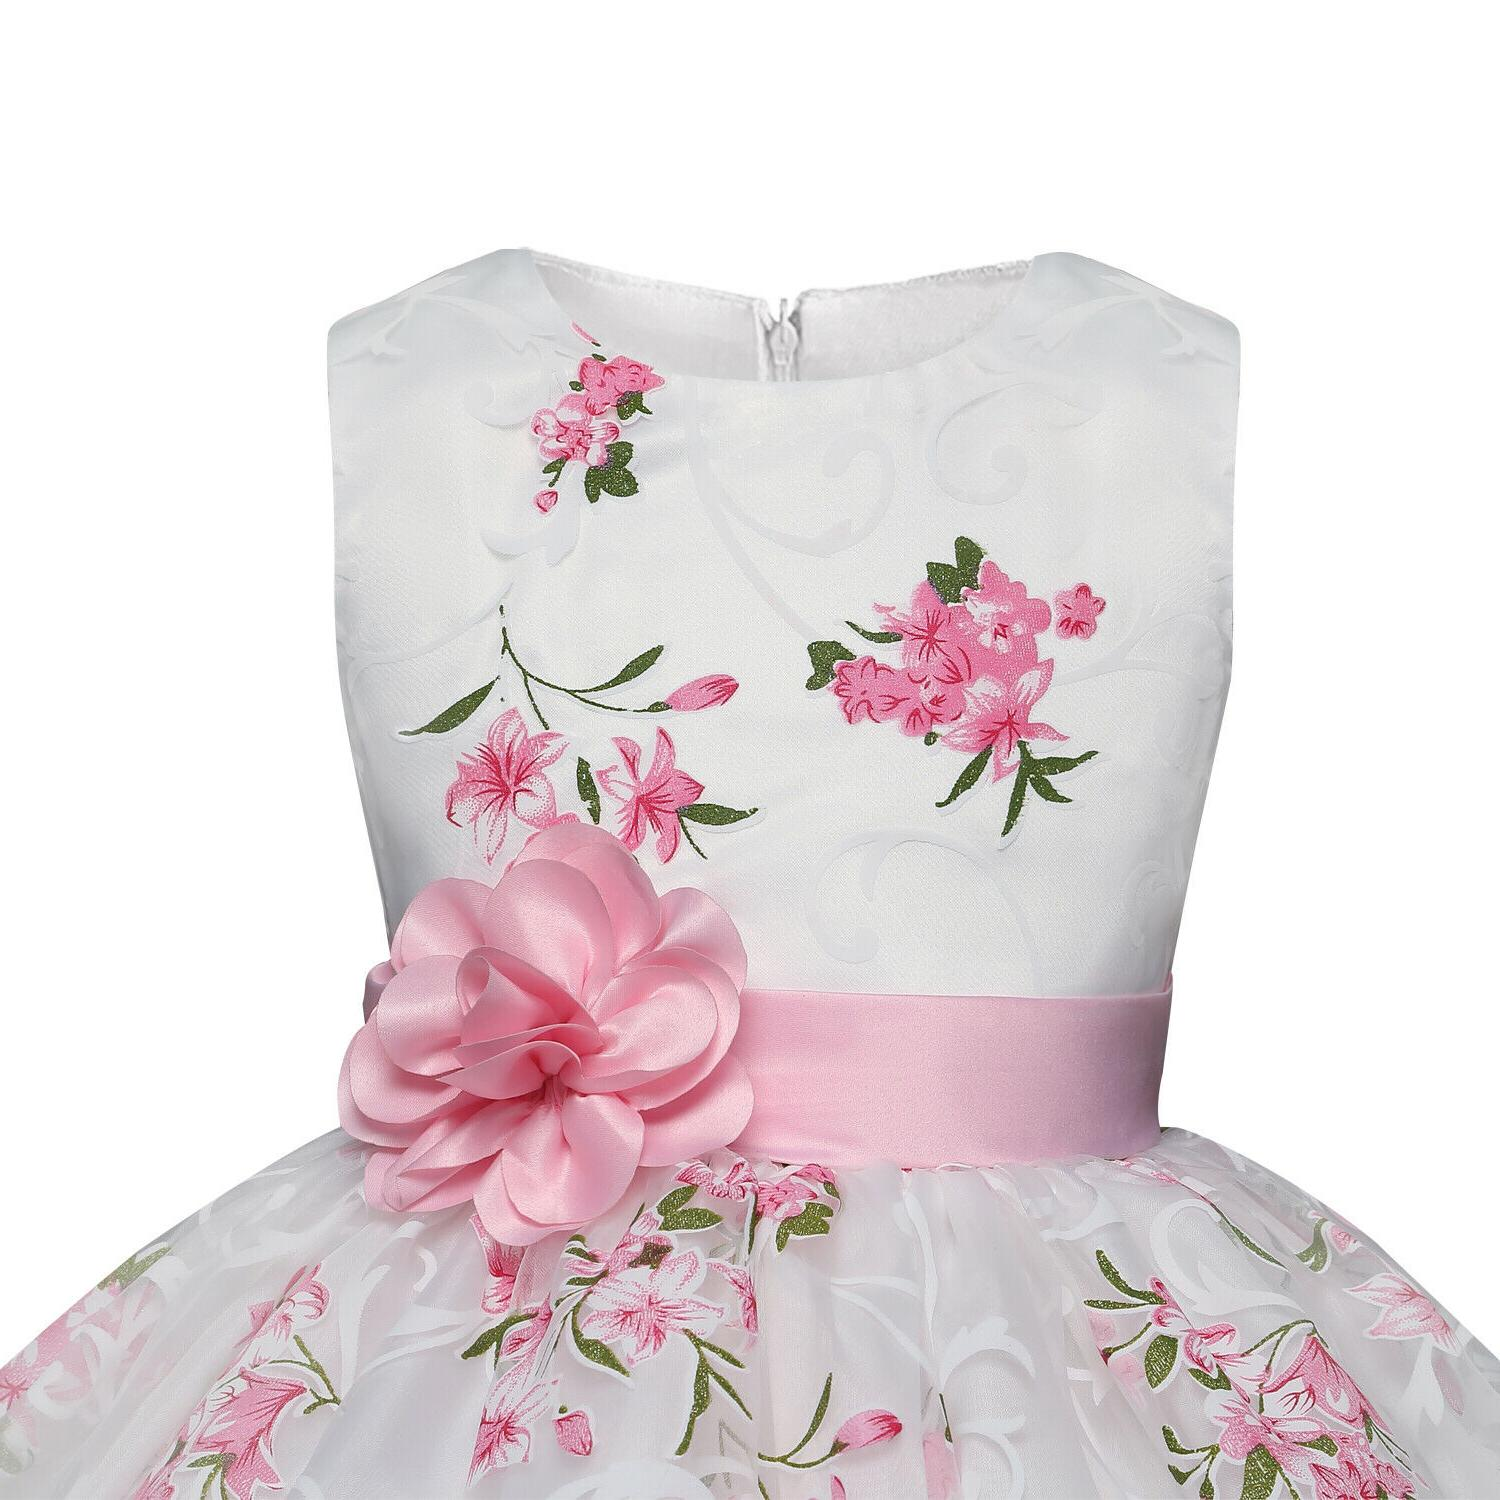 Baby Kids Flower Princess Party Wedding Bridesmaid Size 8T